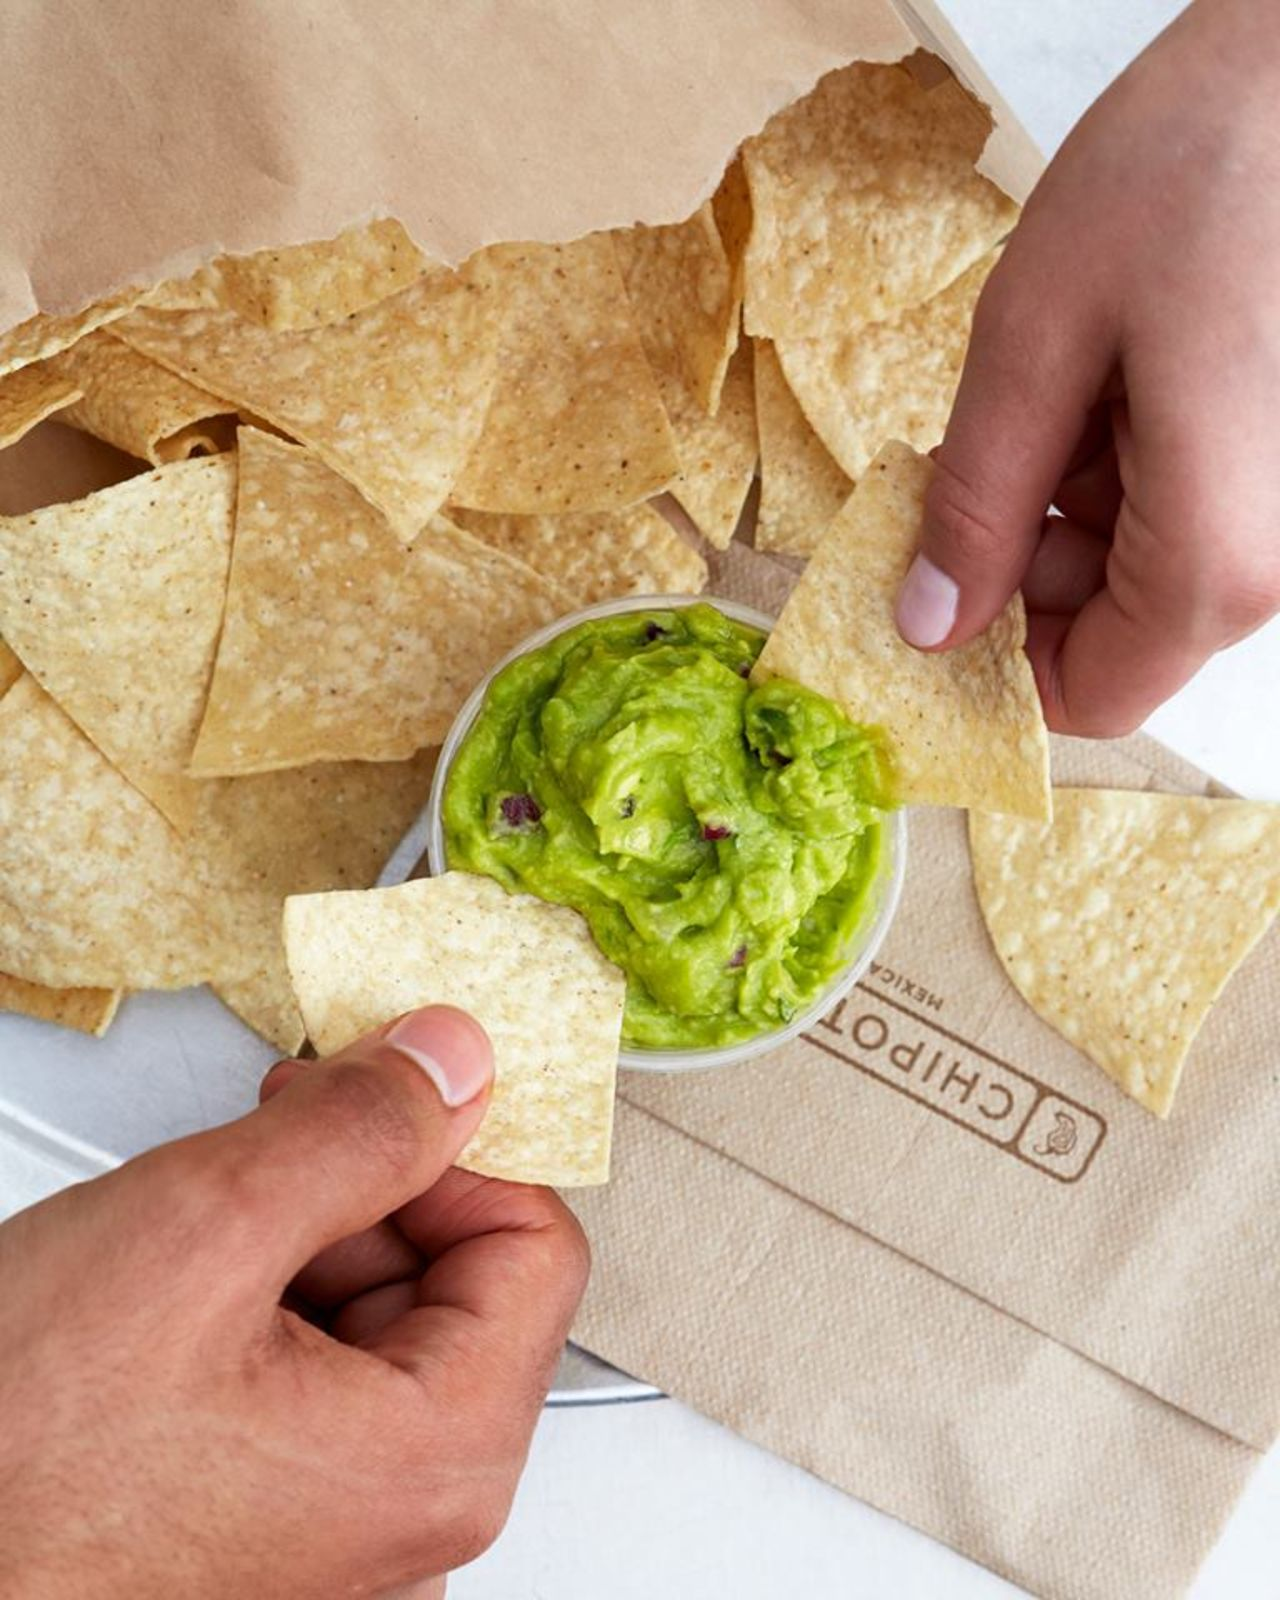 A photo of Chipotle Mexican Grill